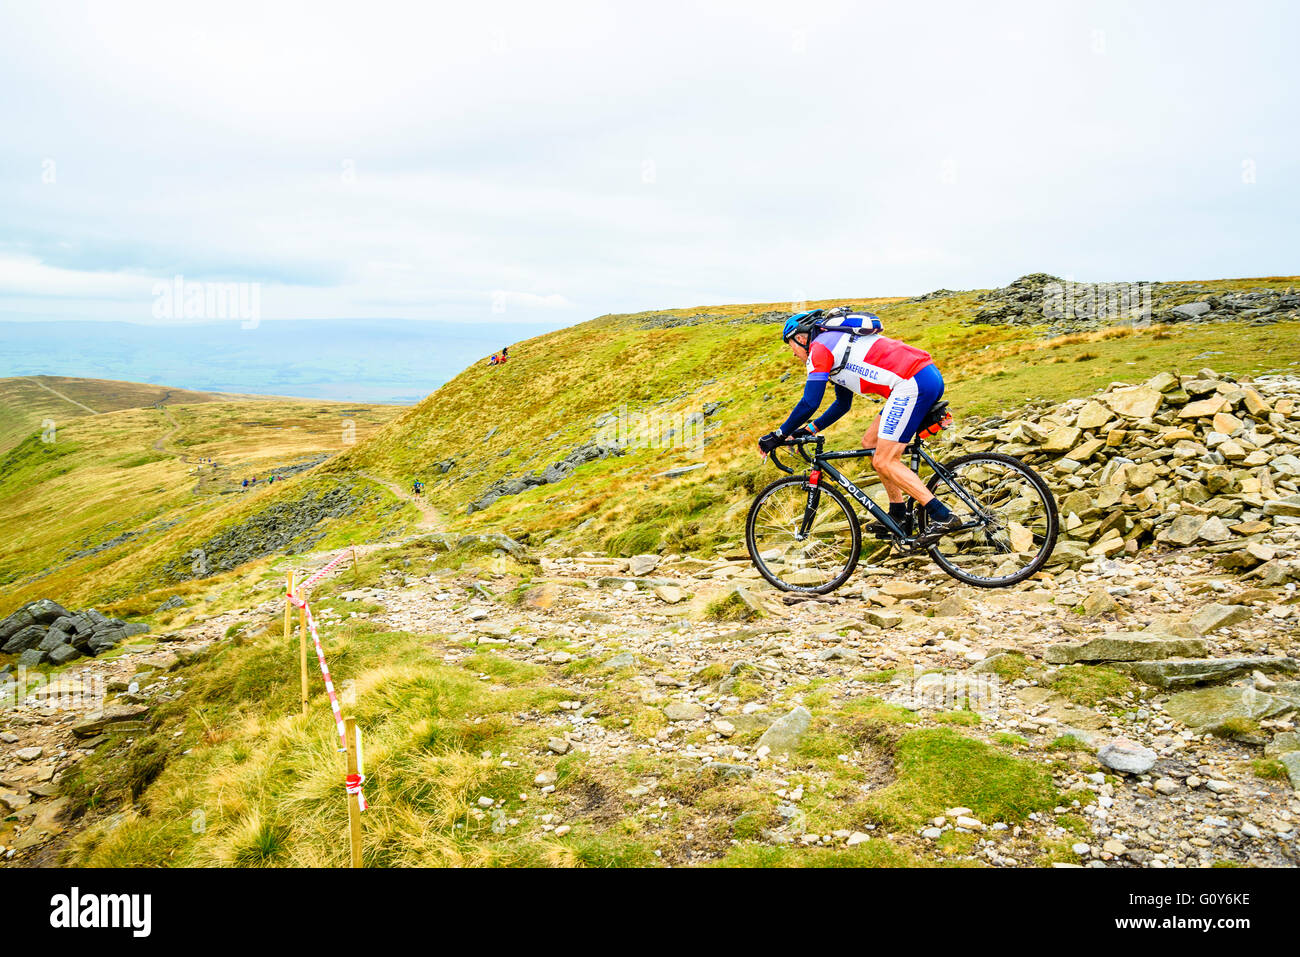 Rider descending Ingleborough in the 2015 Three Peaks cyclocross race, an annual event over three Yorkshire mountains - Stock Image